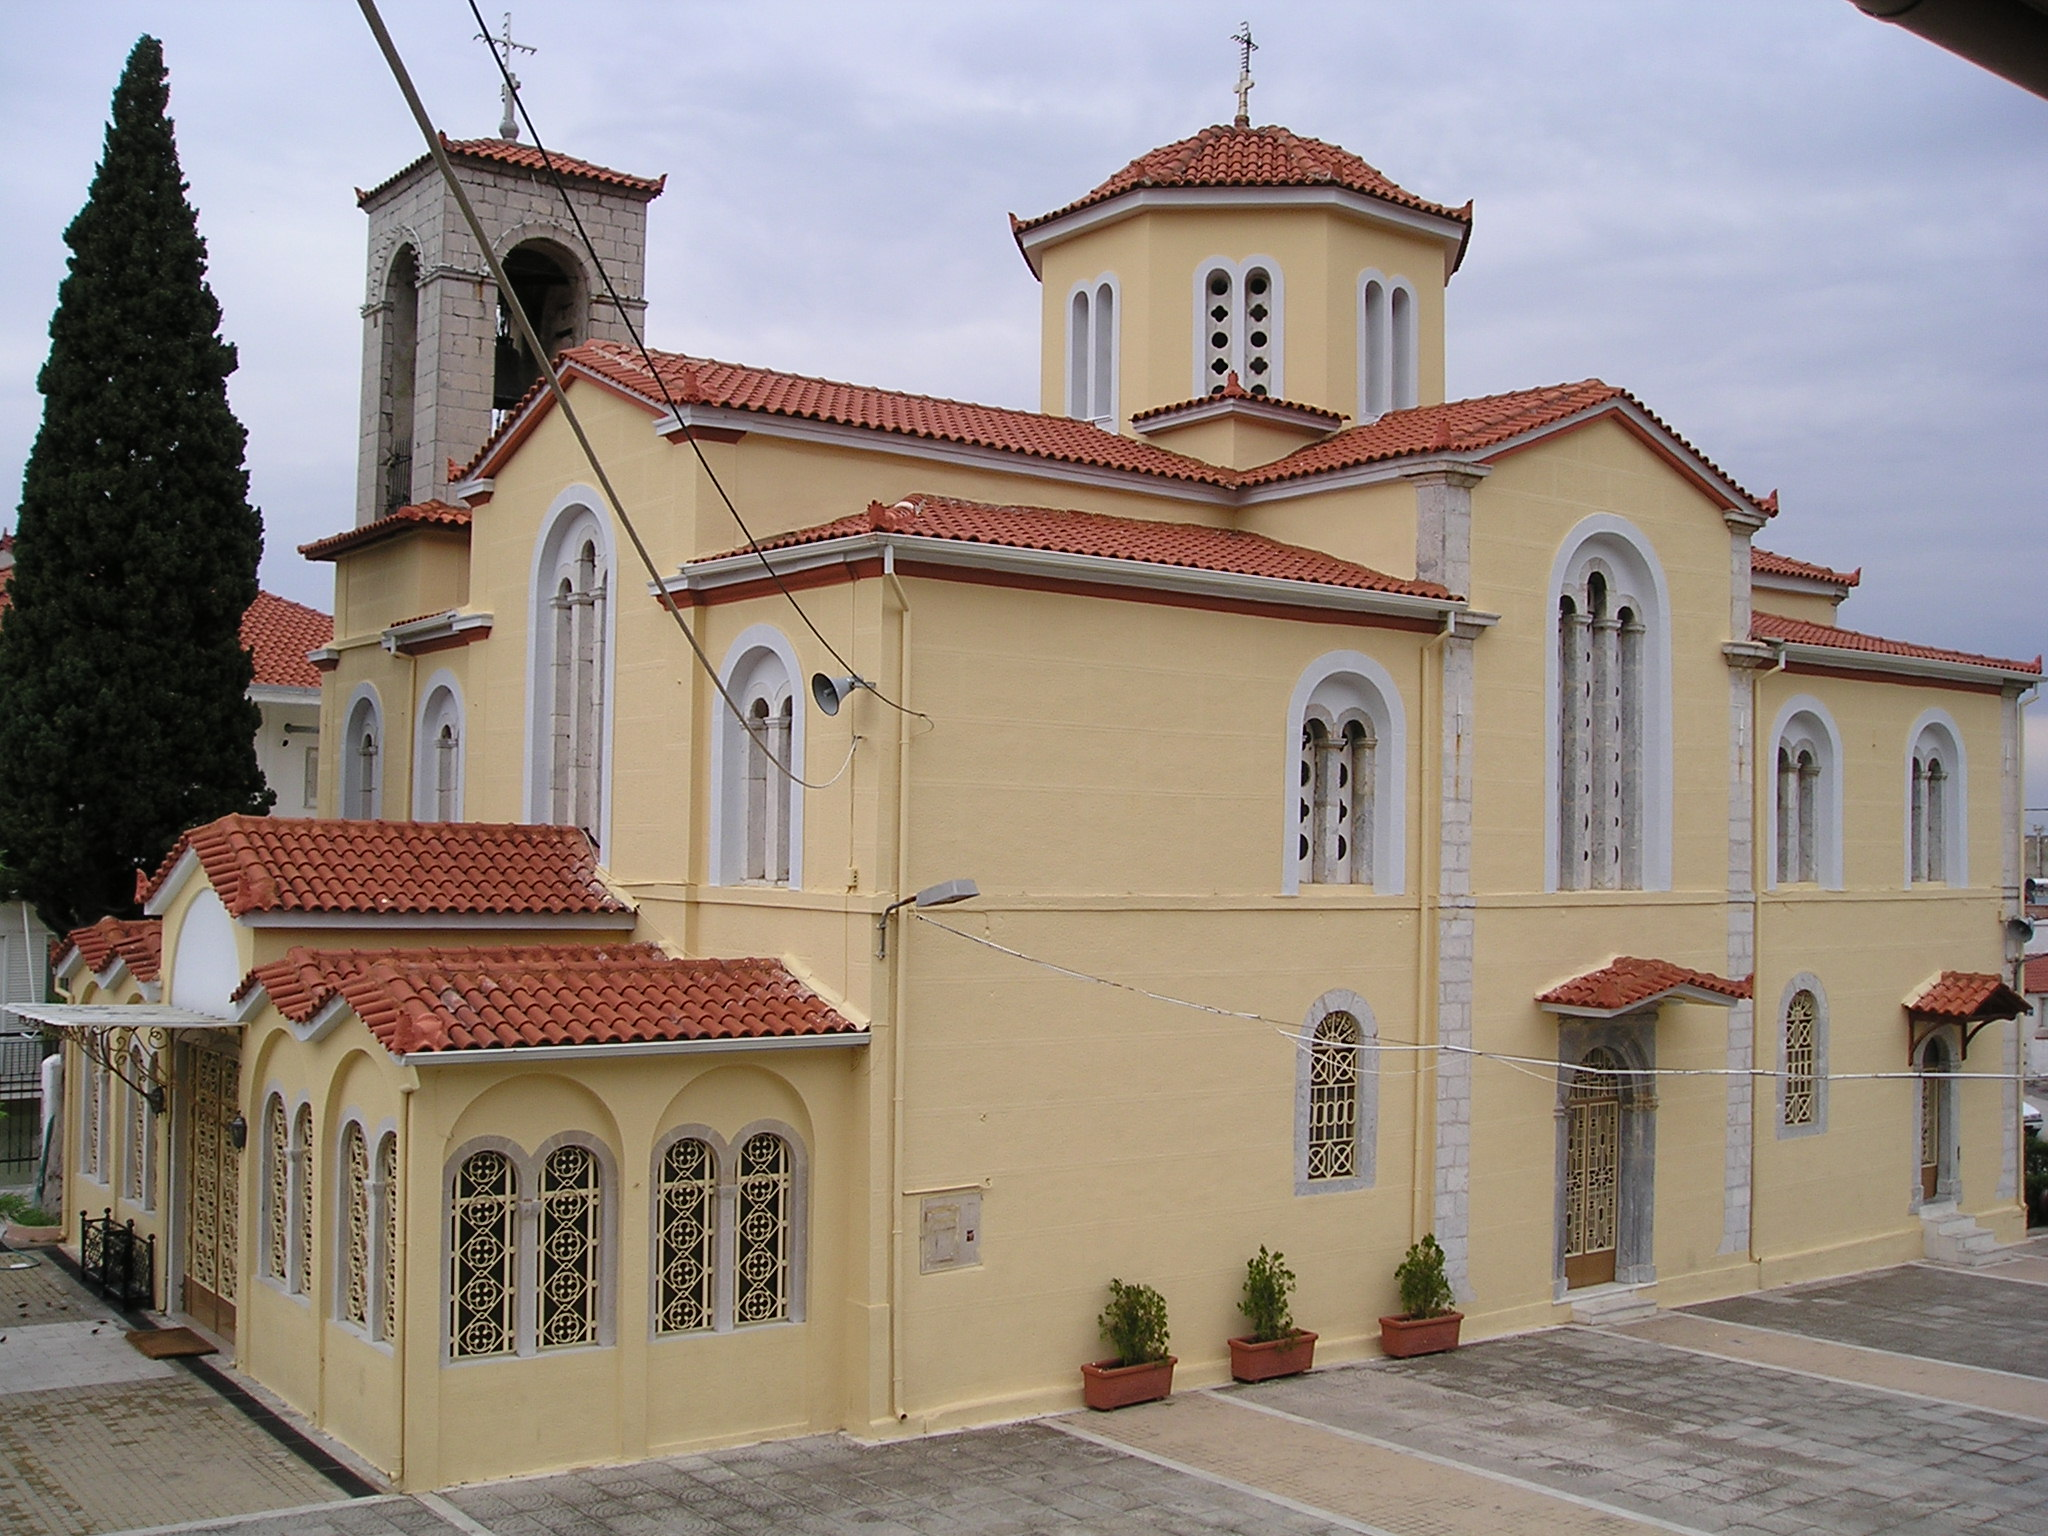 GREEK OTHODOX CHURCH OF EVANGELISTRIA IN LIVADEIA